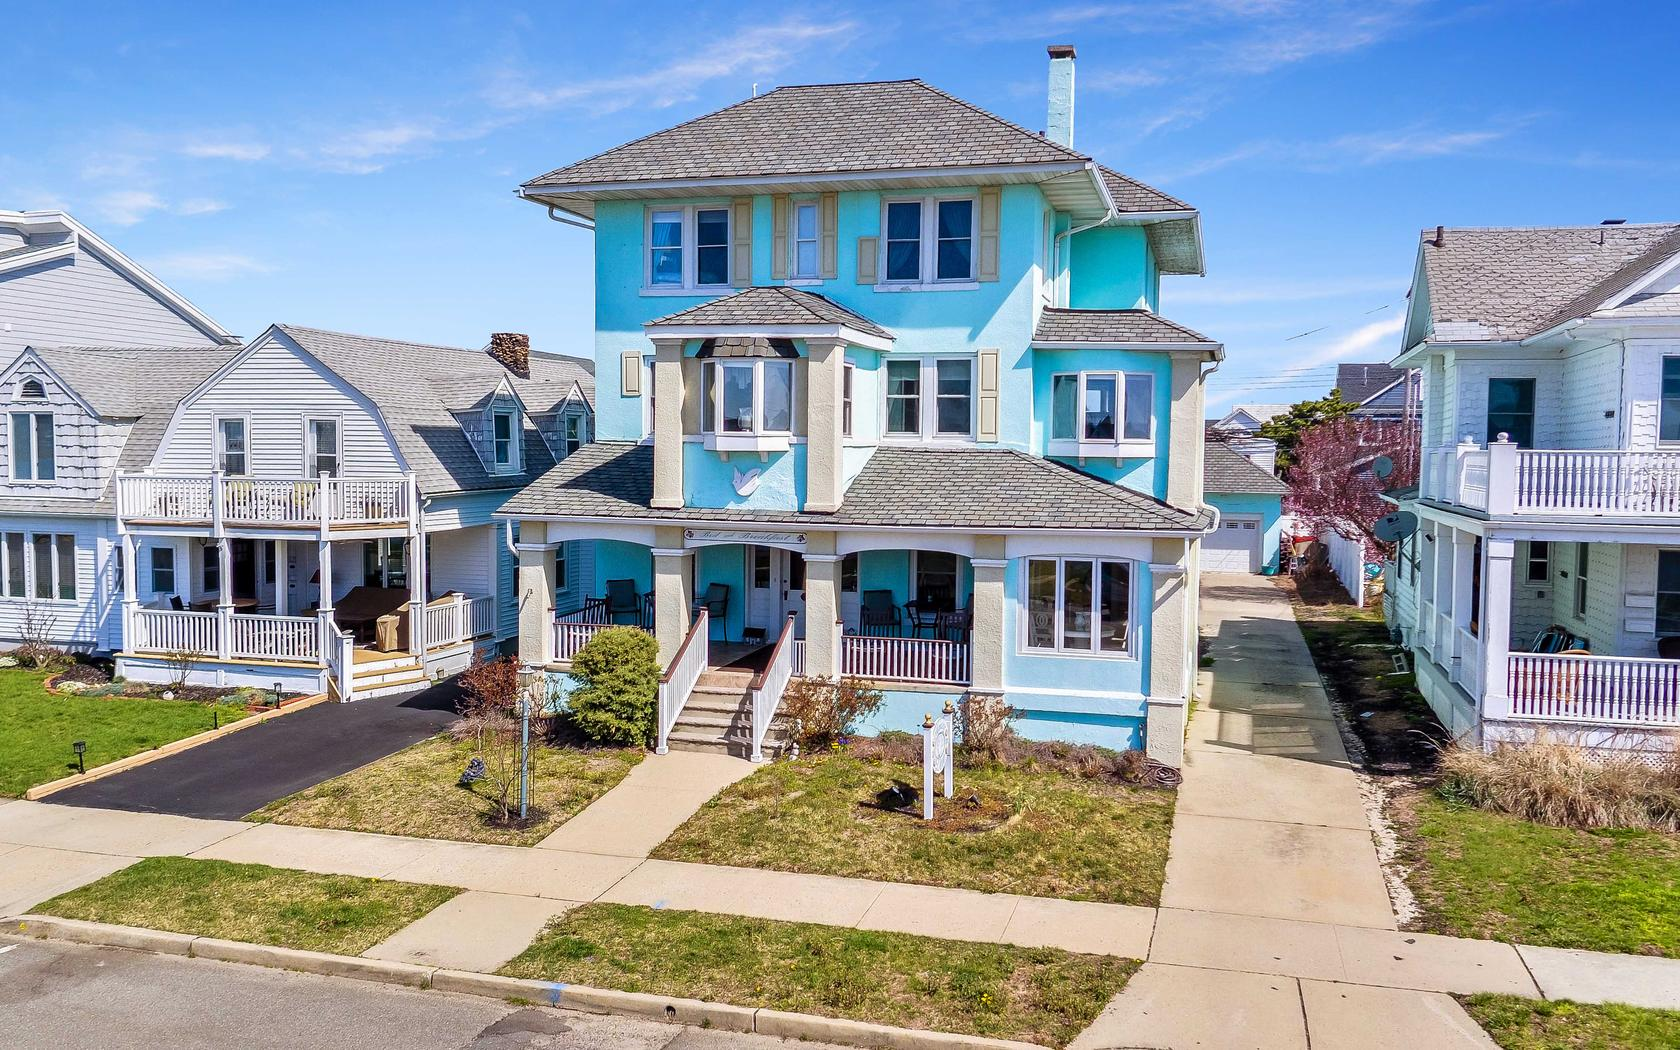 Single Family Home for Sale at Spacious Belmar Shore Colonial 204 5th Avenue Belmar, New Jersey, 07719 United States